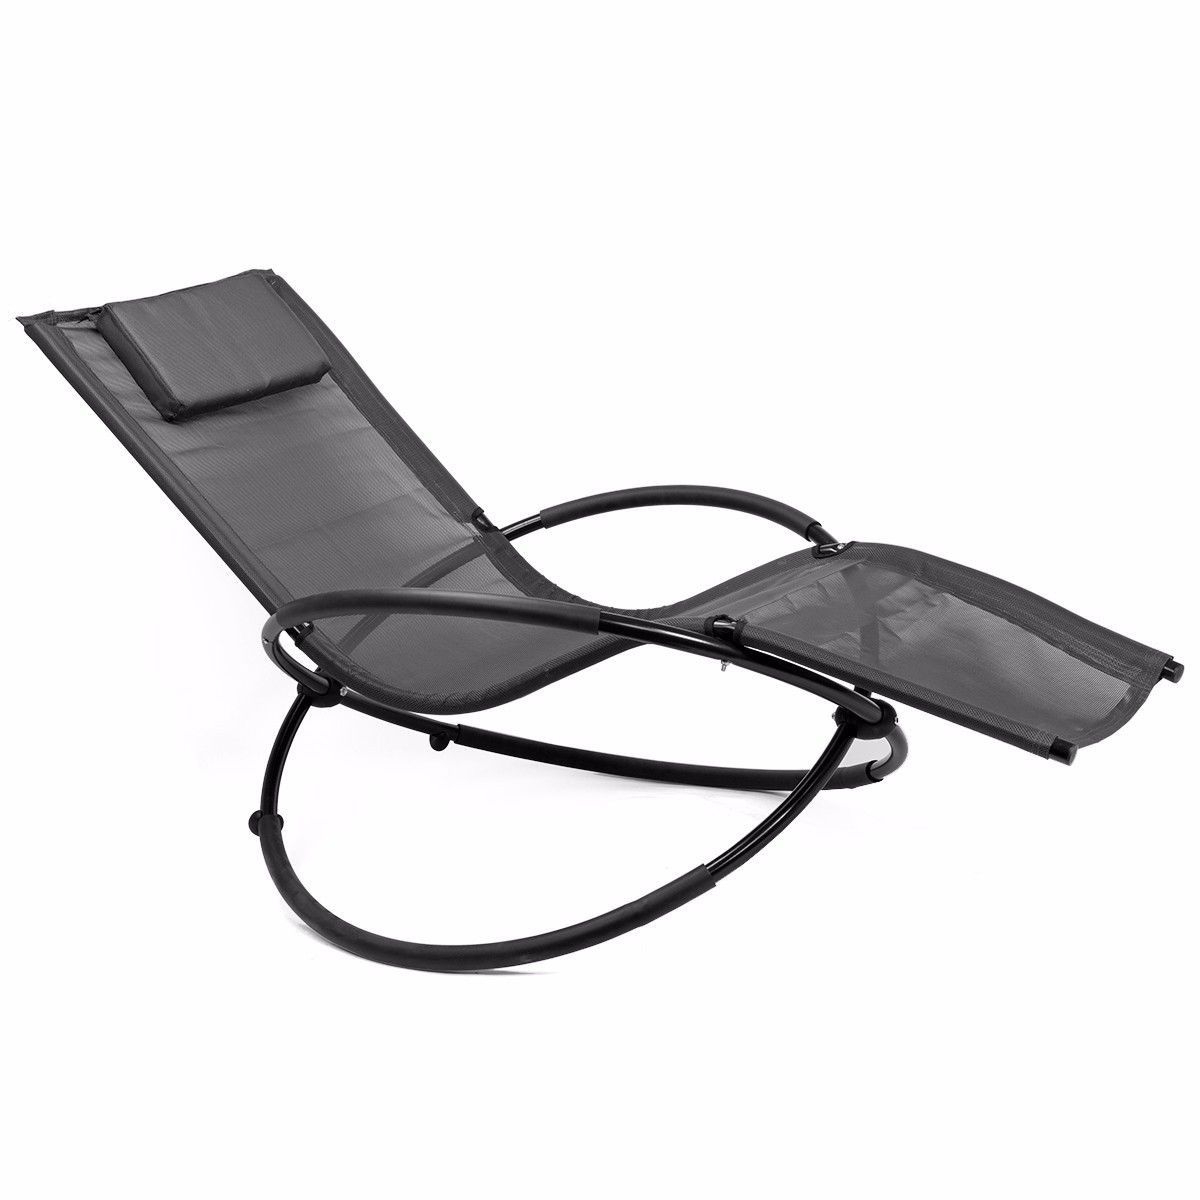 Orbital Patio Lounger Rocking Chairs Pertaining To Preferred Details About Outdoor Folding Orbit Zero Gravity Chair Patio Garden Lounger Rocking Relax Grey (View 18 of 25)